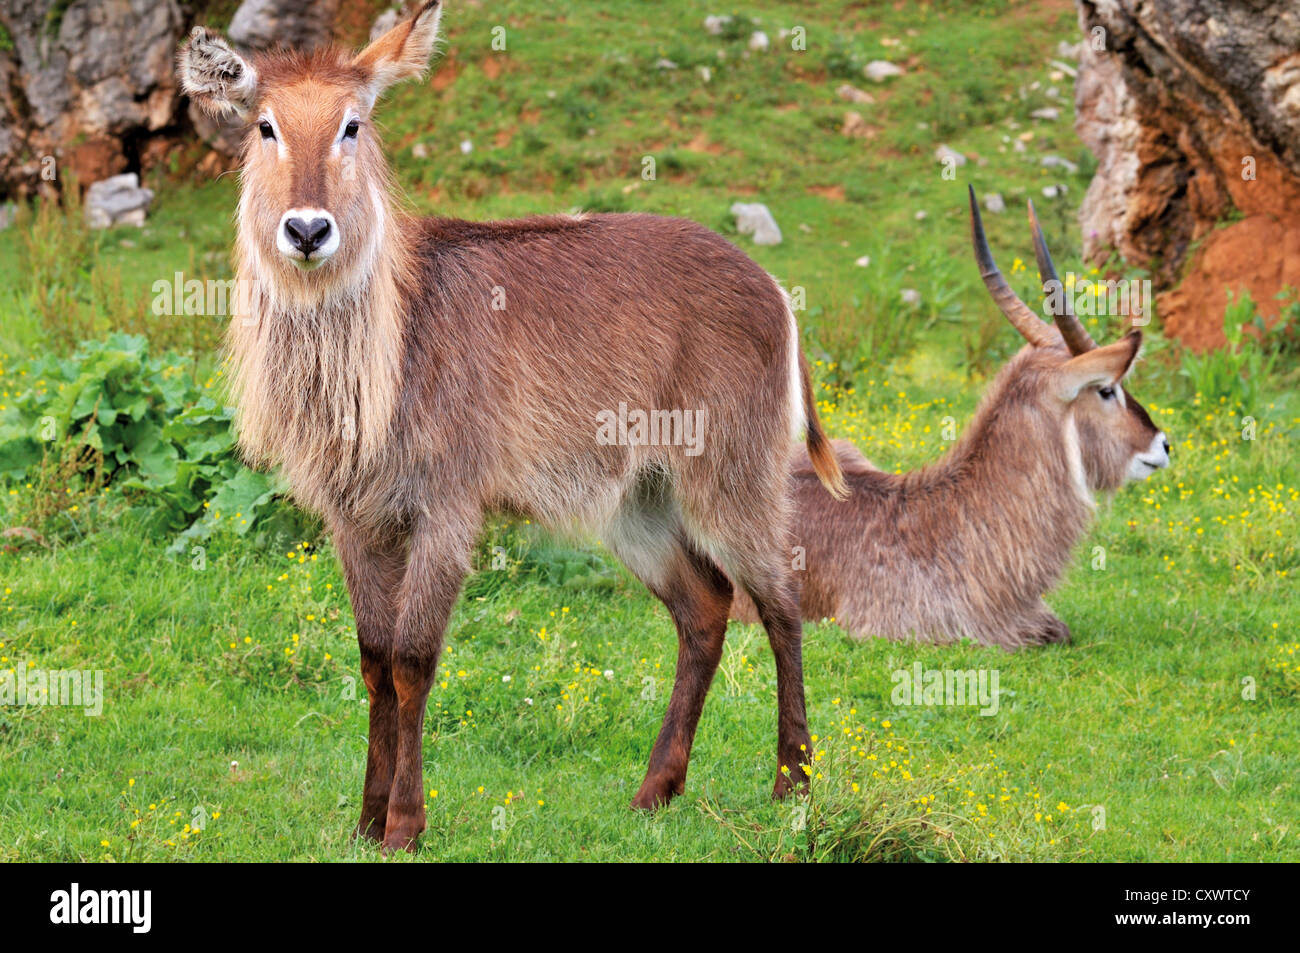 Spain, Cantabria: Kobus in the Nature and animal park Carbaceno - Stock Image